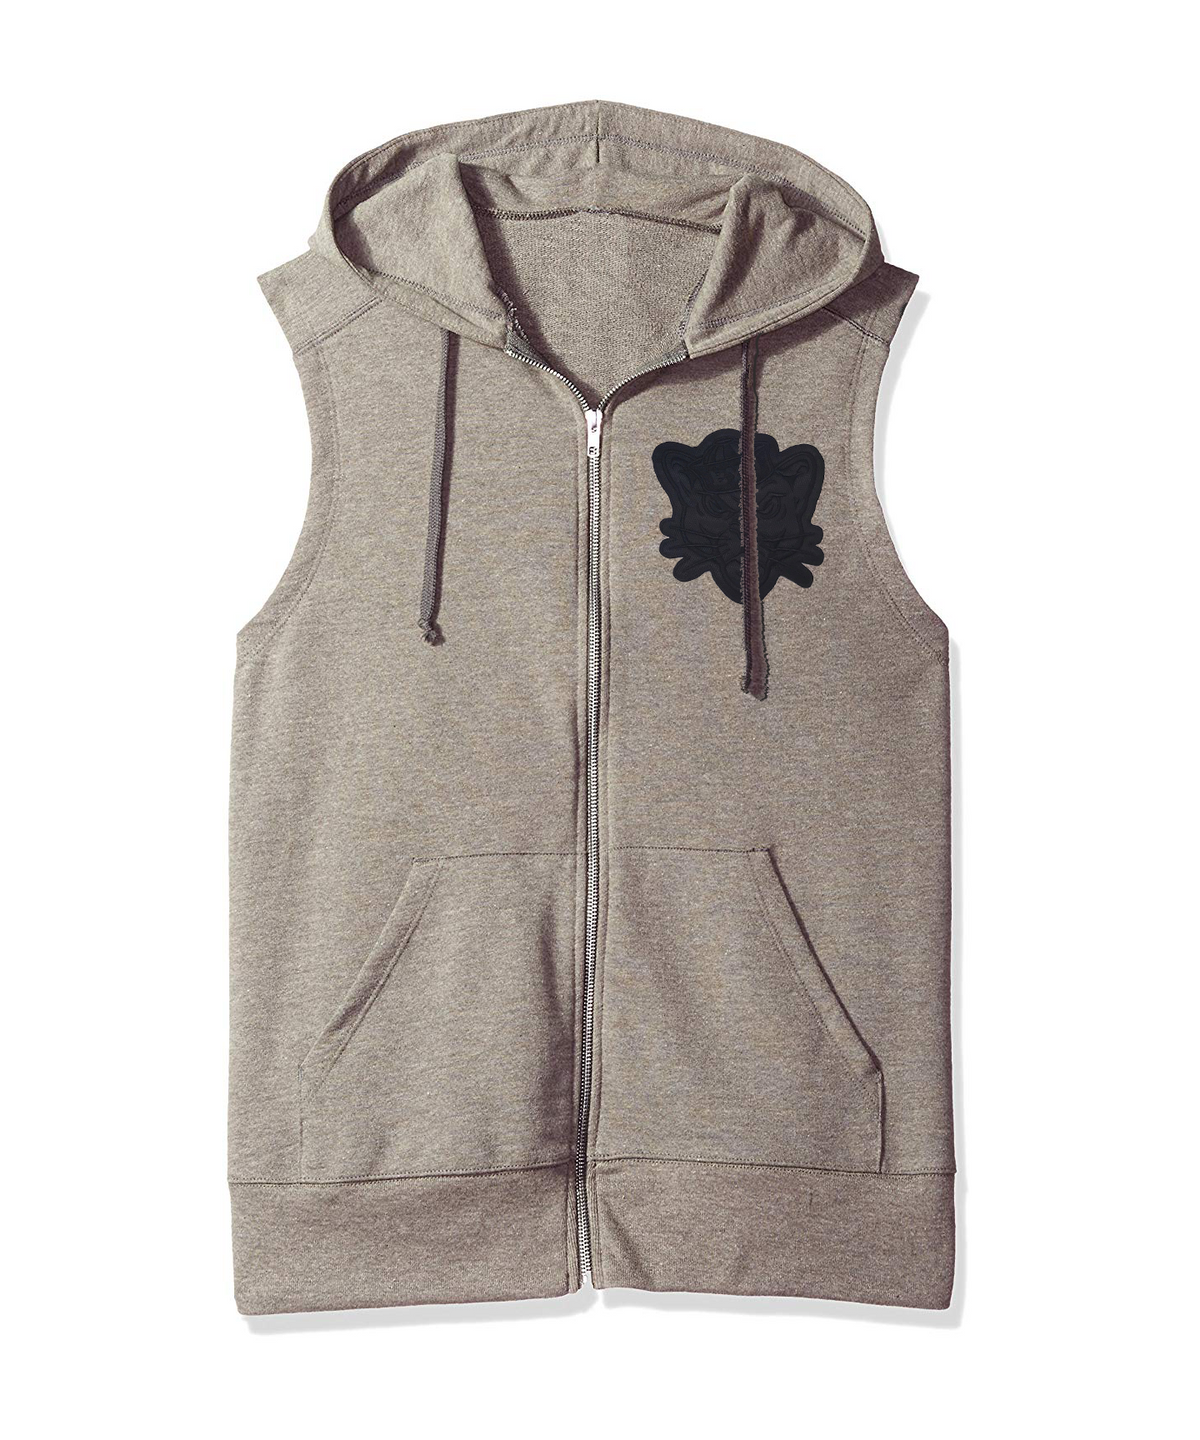 Gray Sleeveless Full-Zip Hoodie with Blackout Sailor Cougar Patch